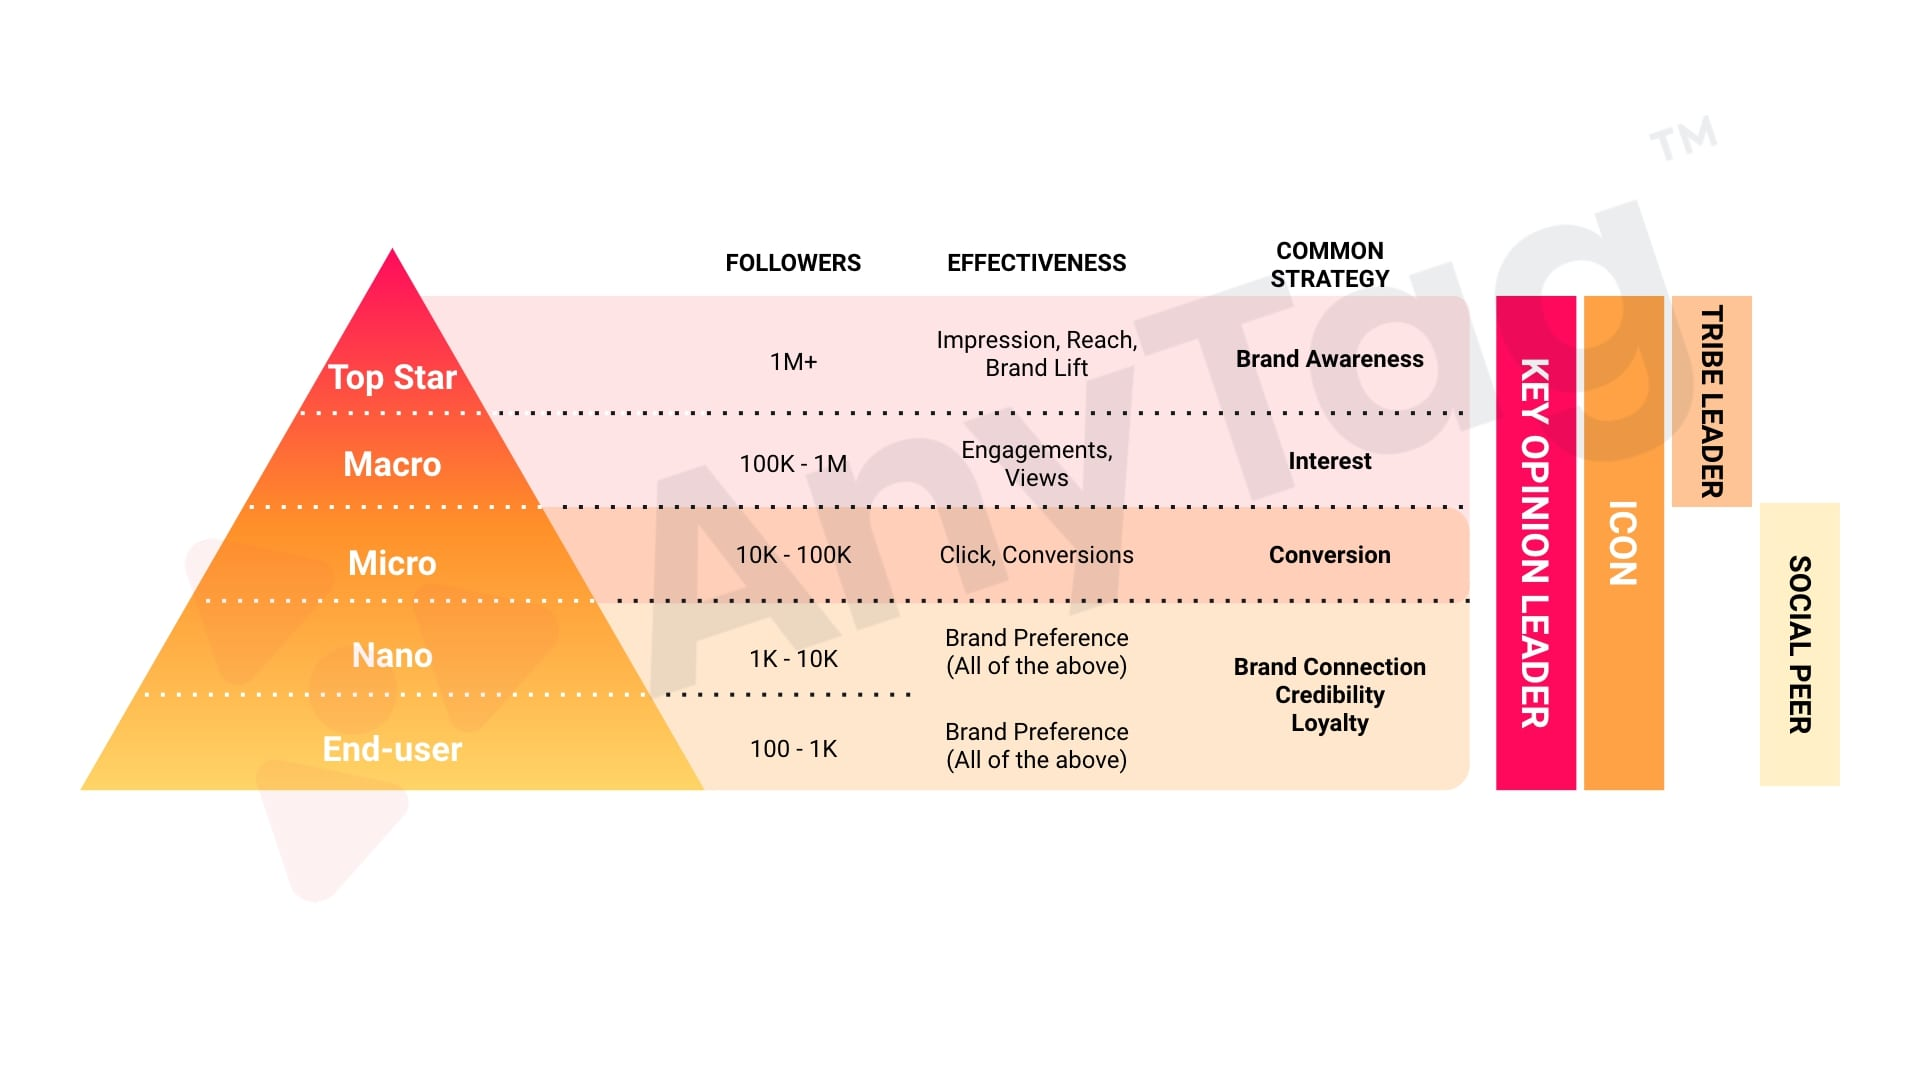 Types of influencers and effectiveness of influencers in Thailand 2020